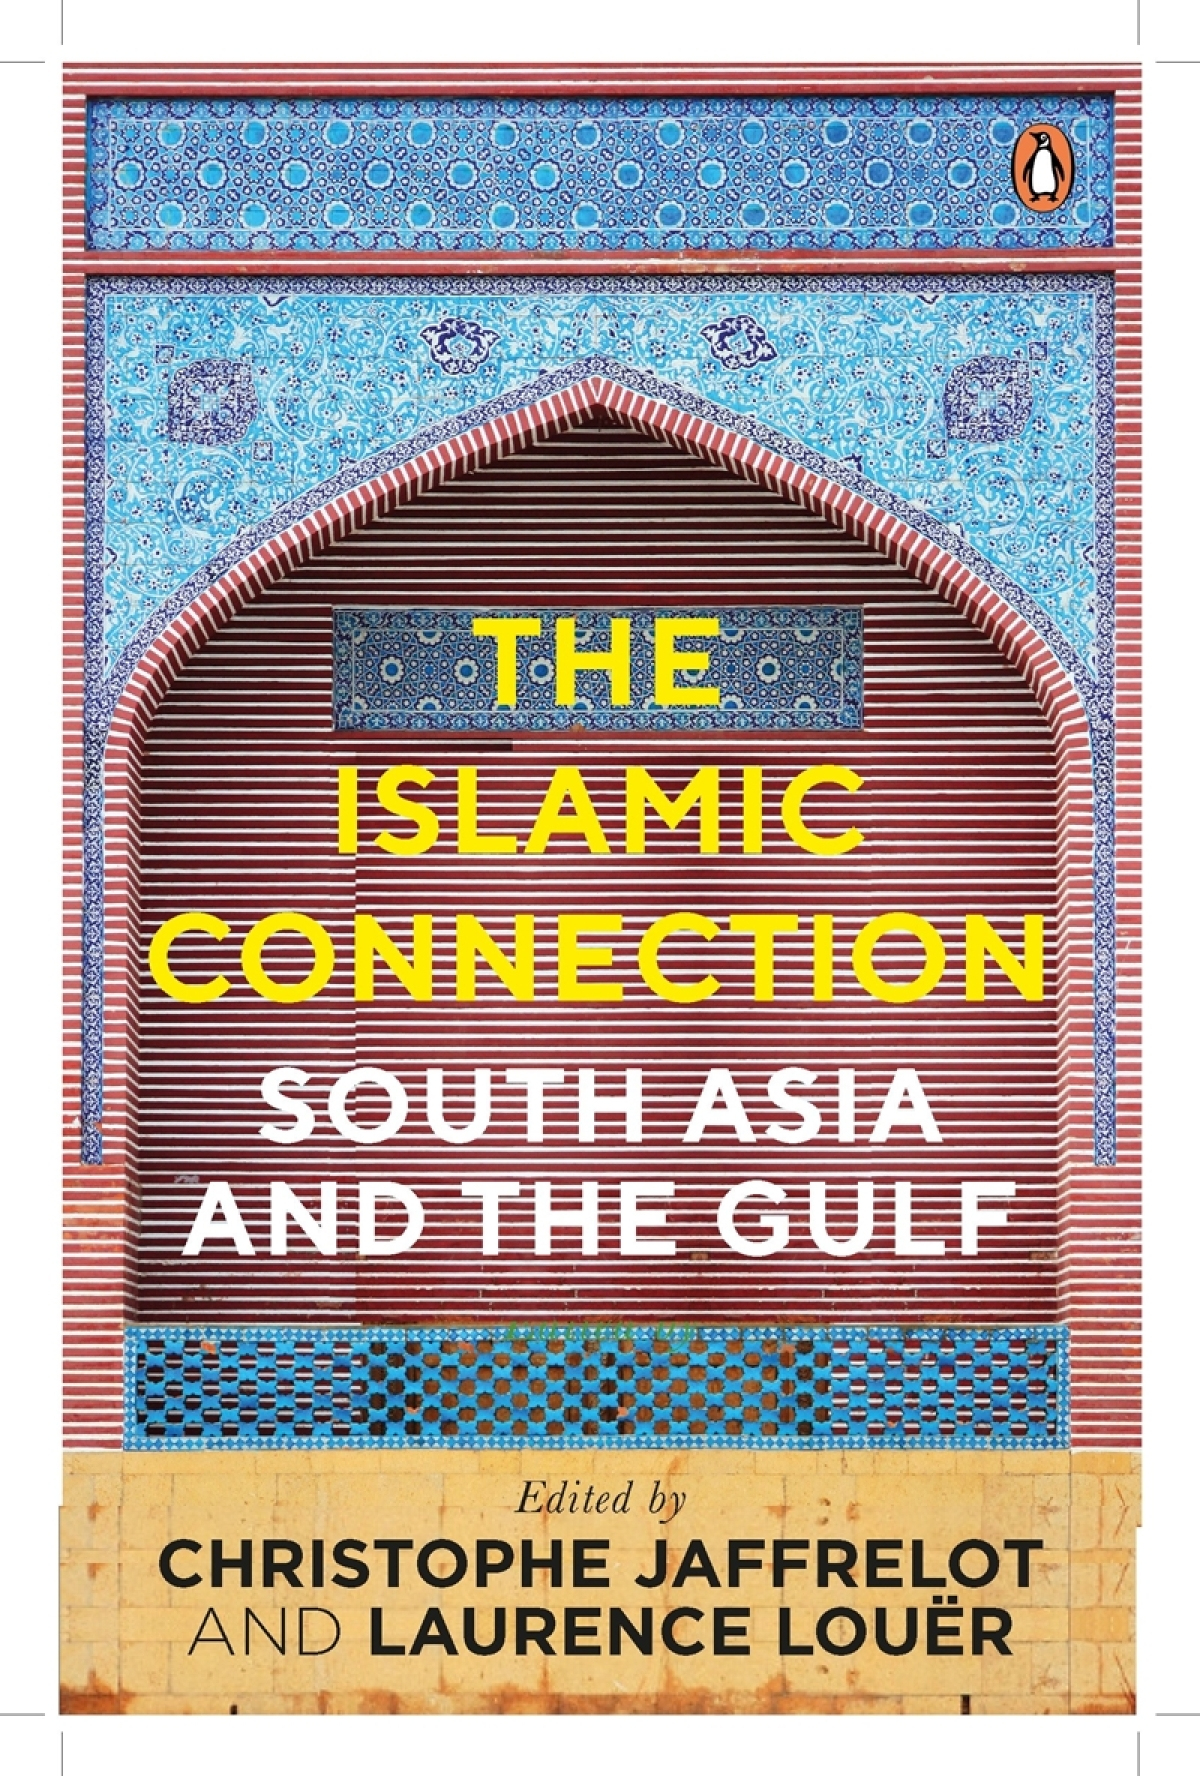 The Islamic Connection: South Asia and the Gulf by Christophe Jaffrelot and Laurence Louër- Review